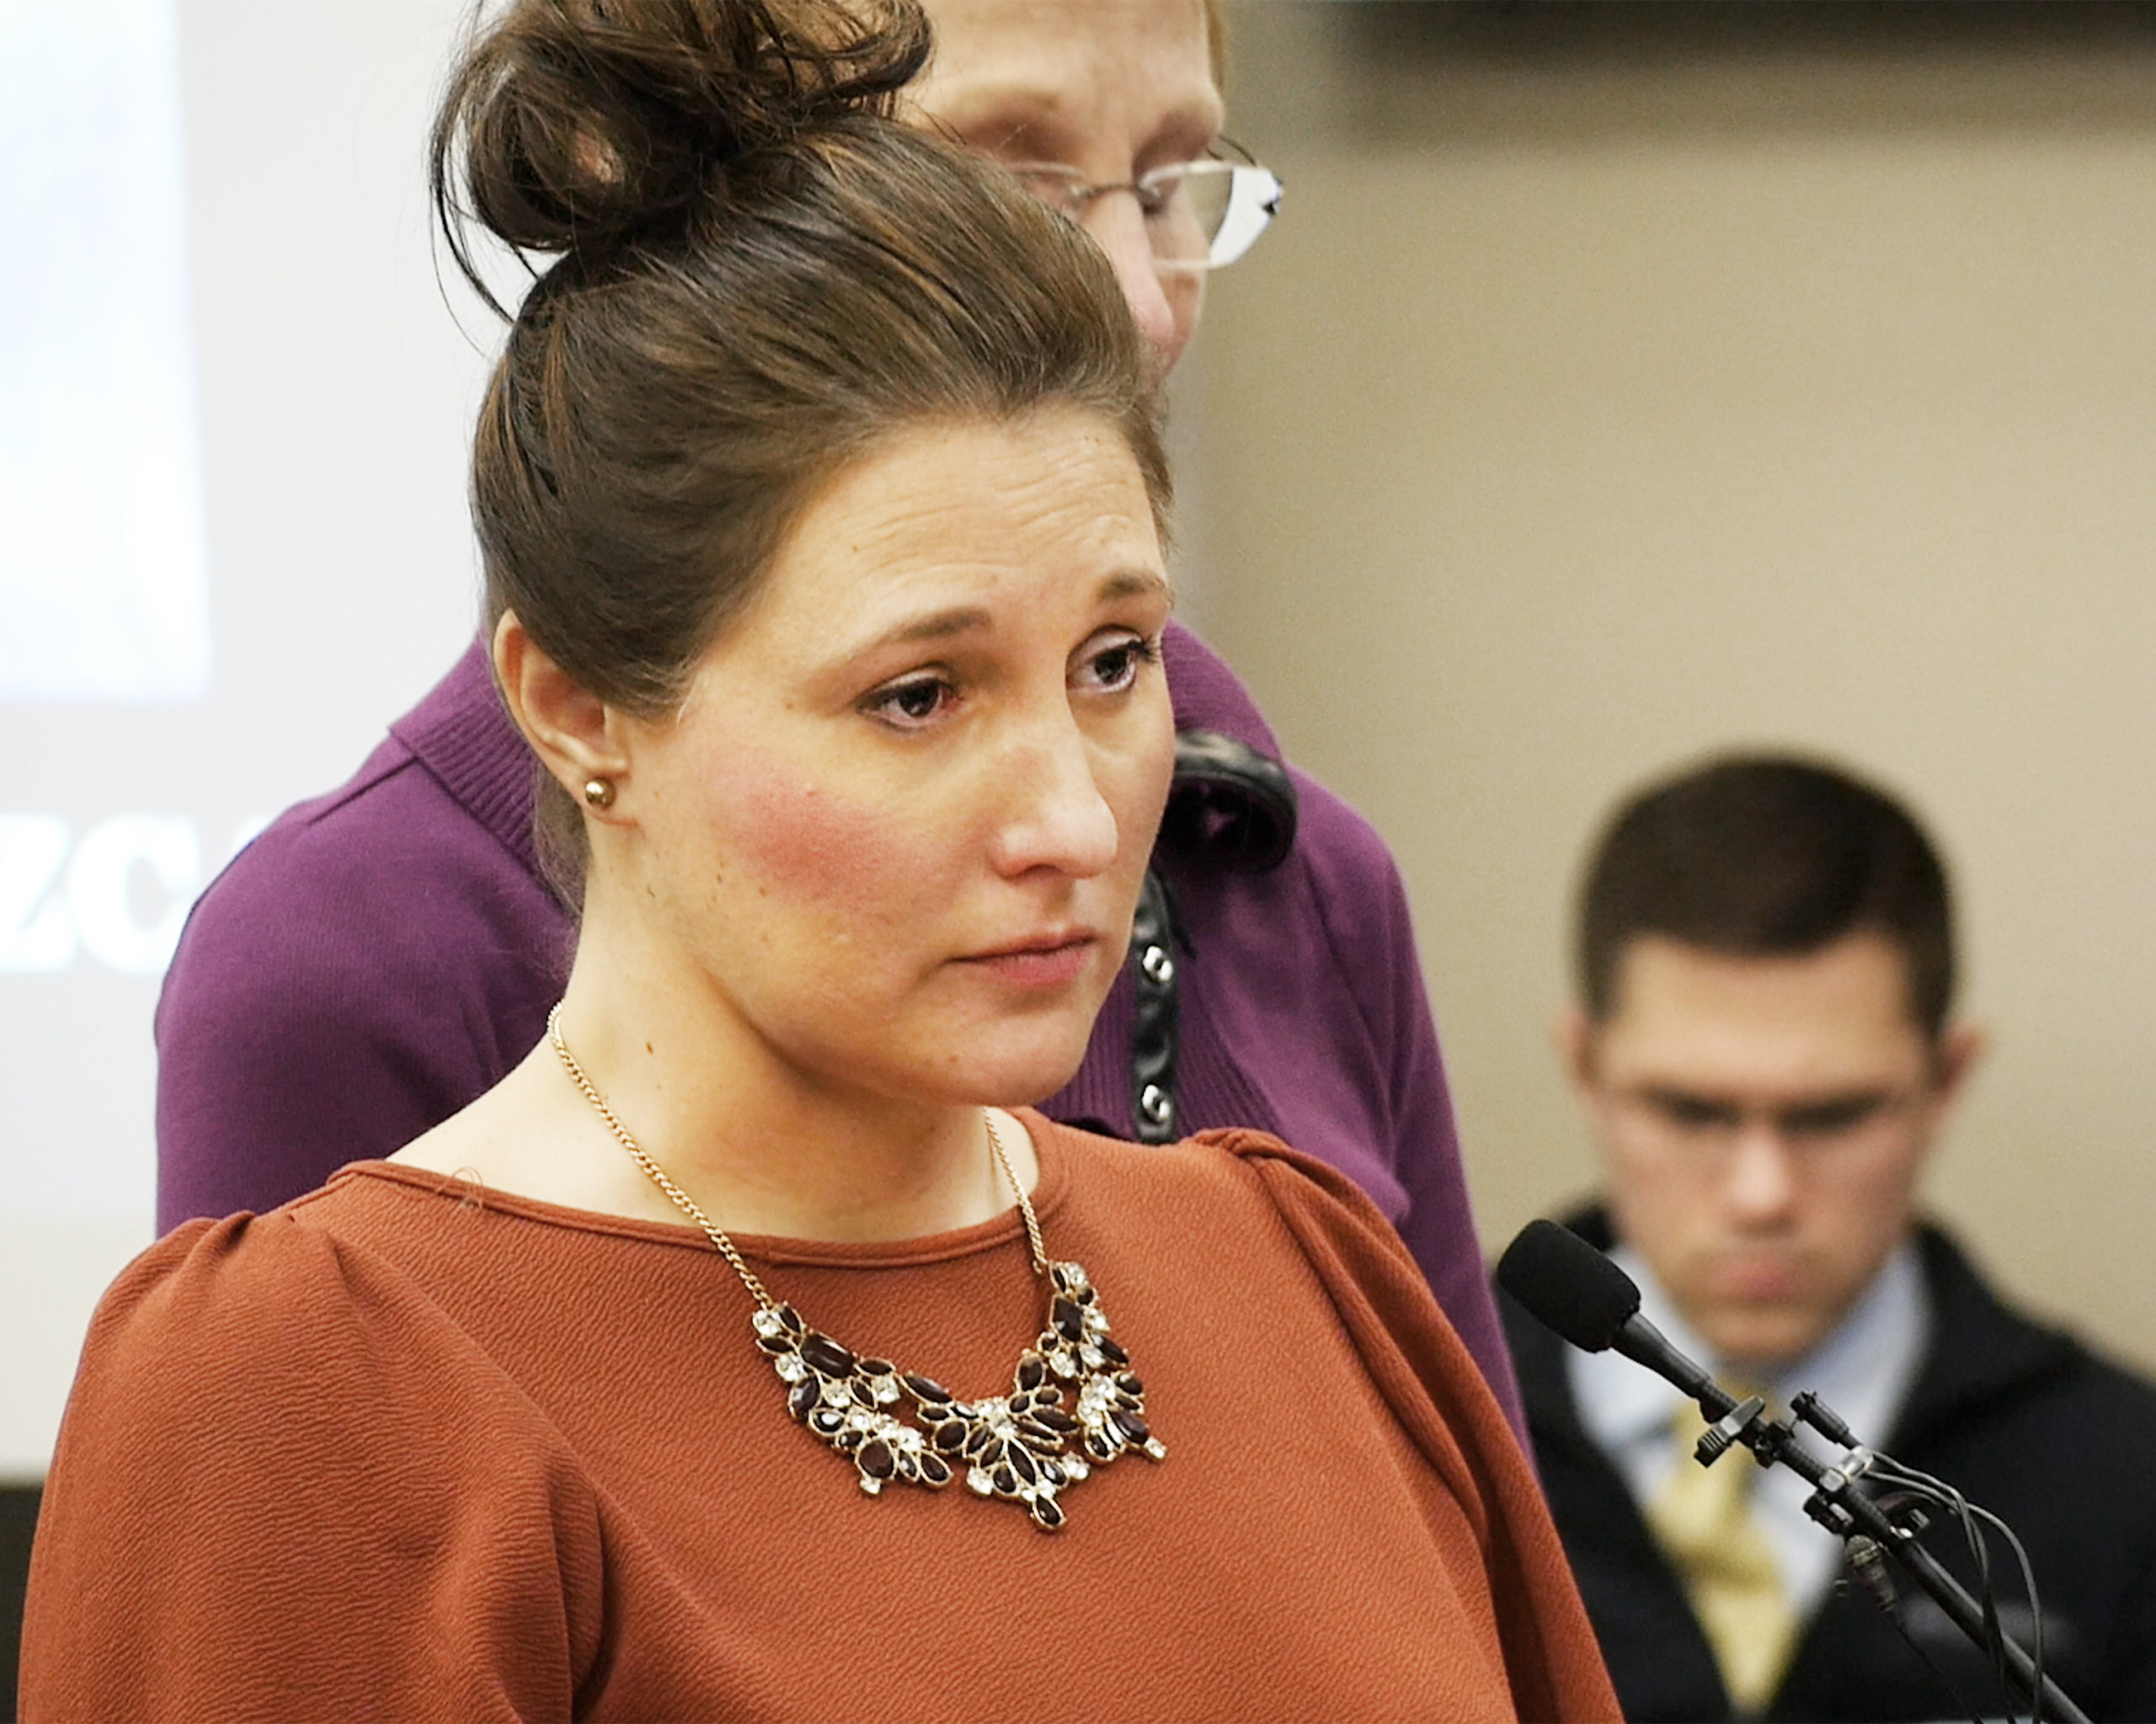 Trinea Gonczar faces long time family friend Larry Nassar to give her victim impact statement in Ingham County, Michigan.